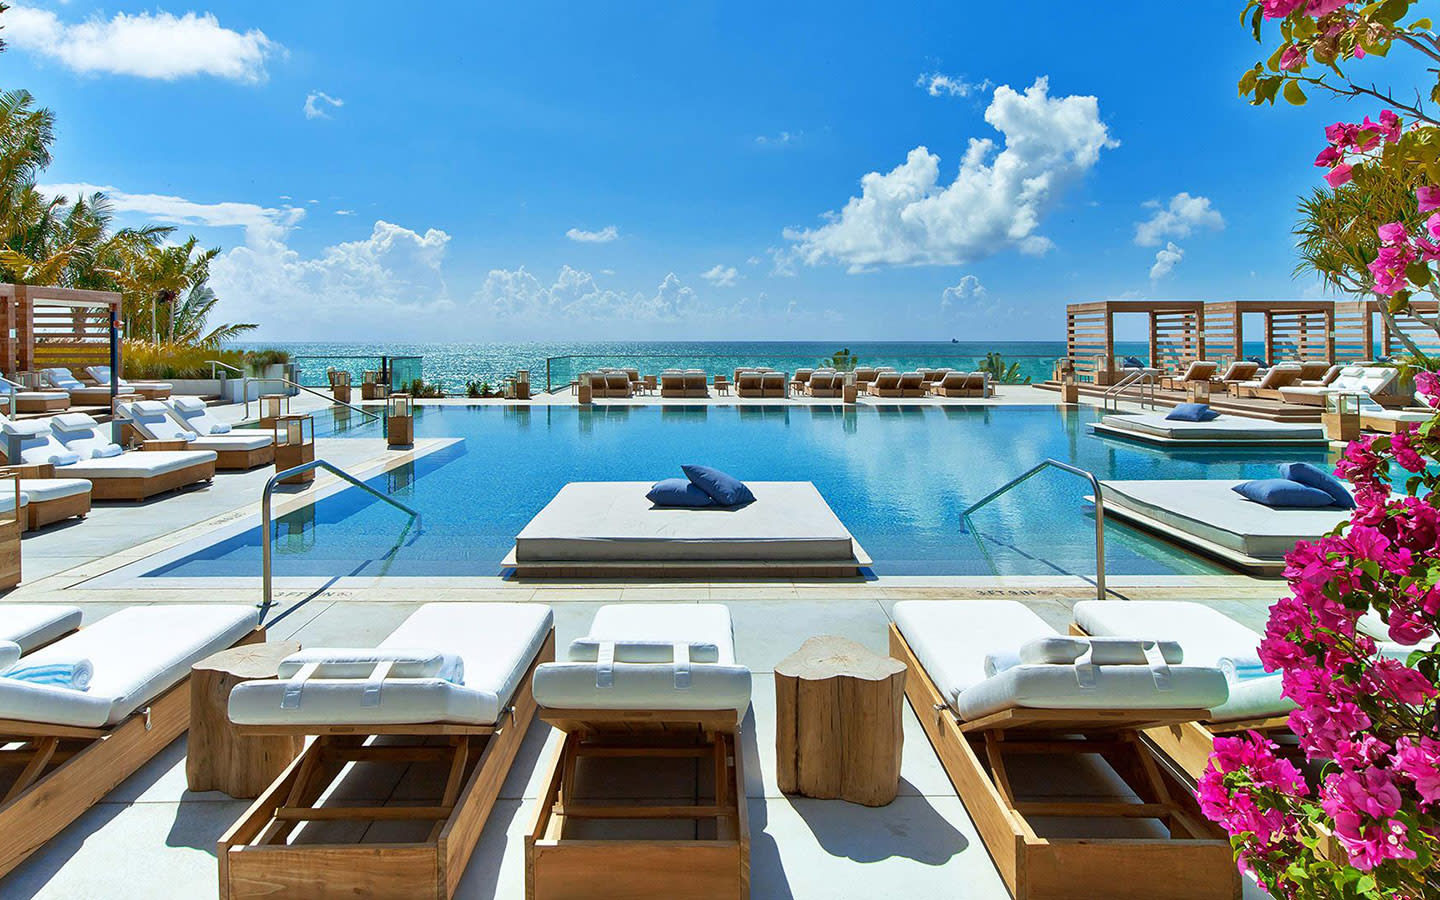 1 Hotel South Beach's Beautiful Center Pool